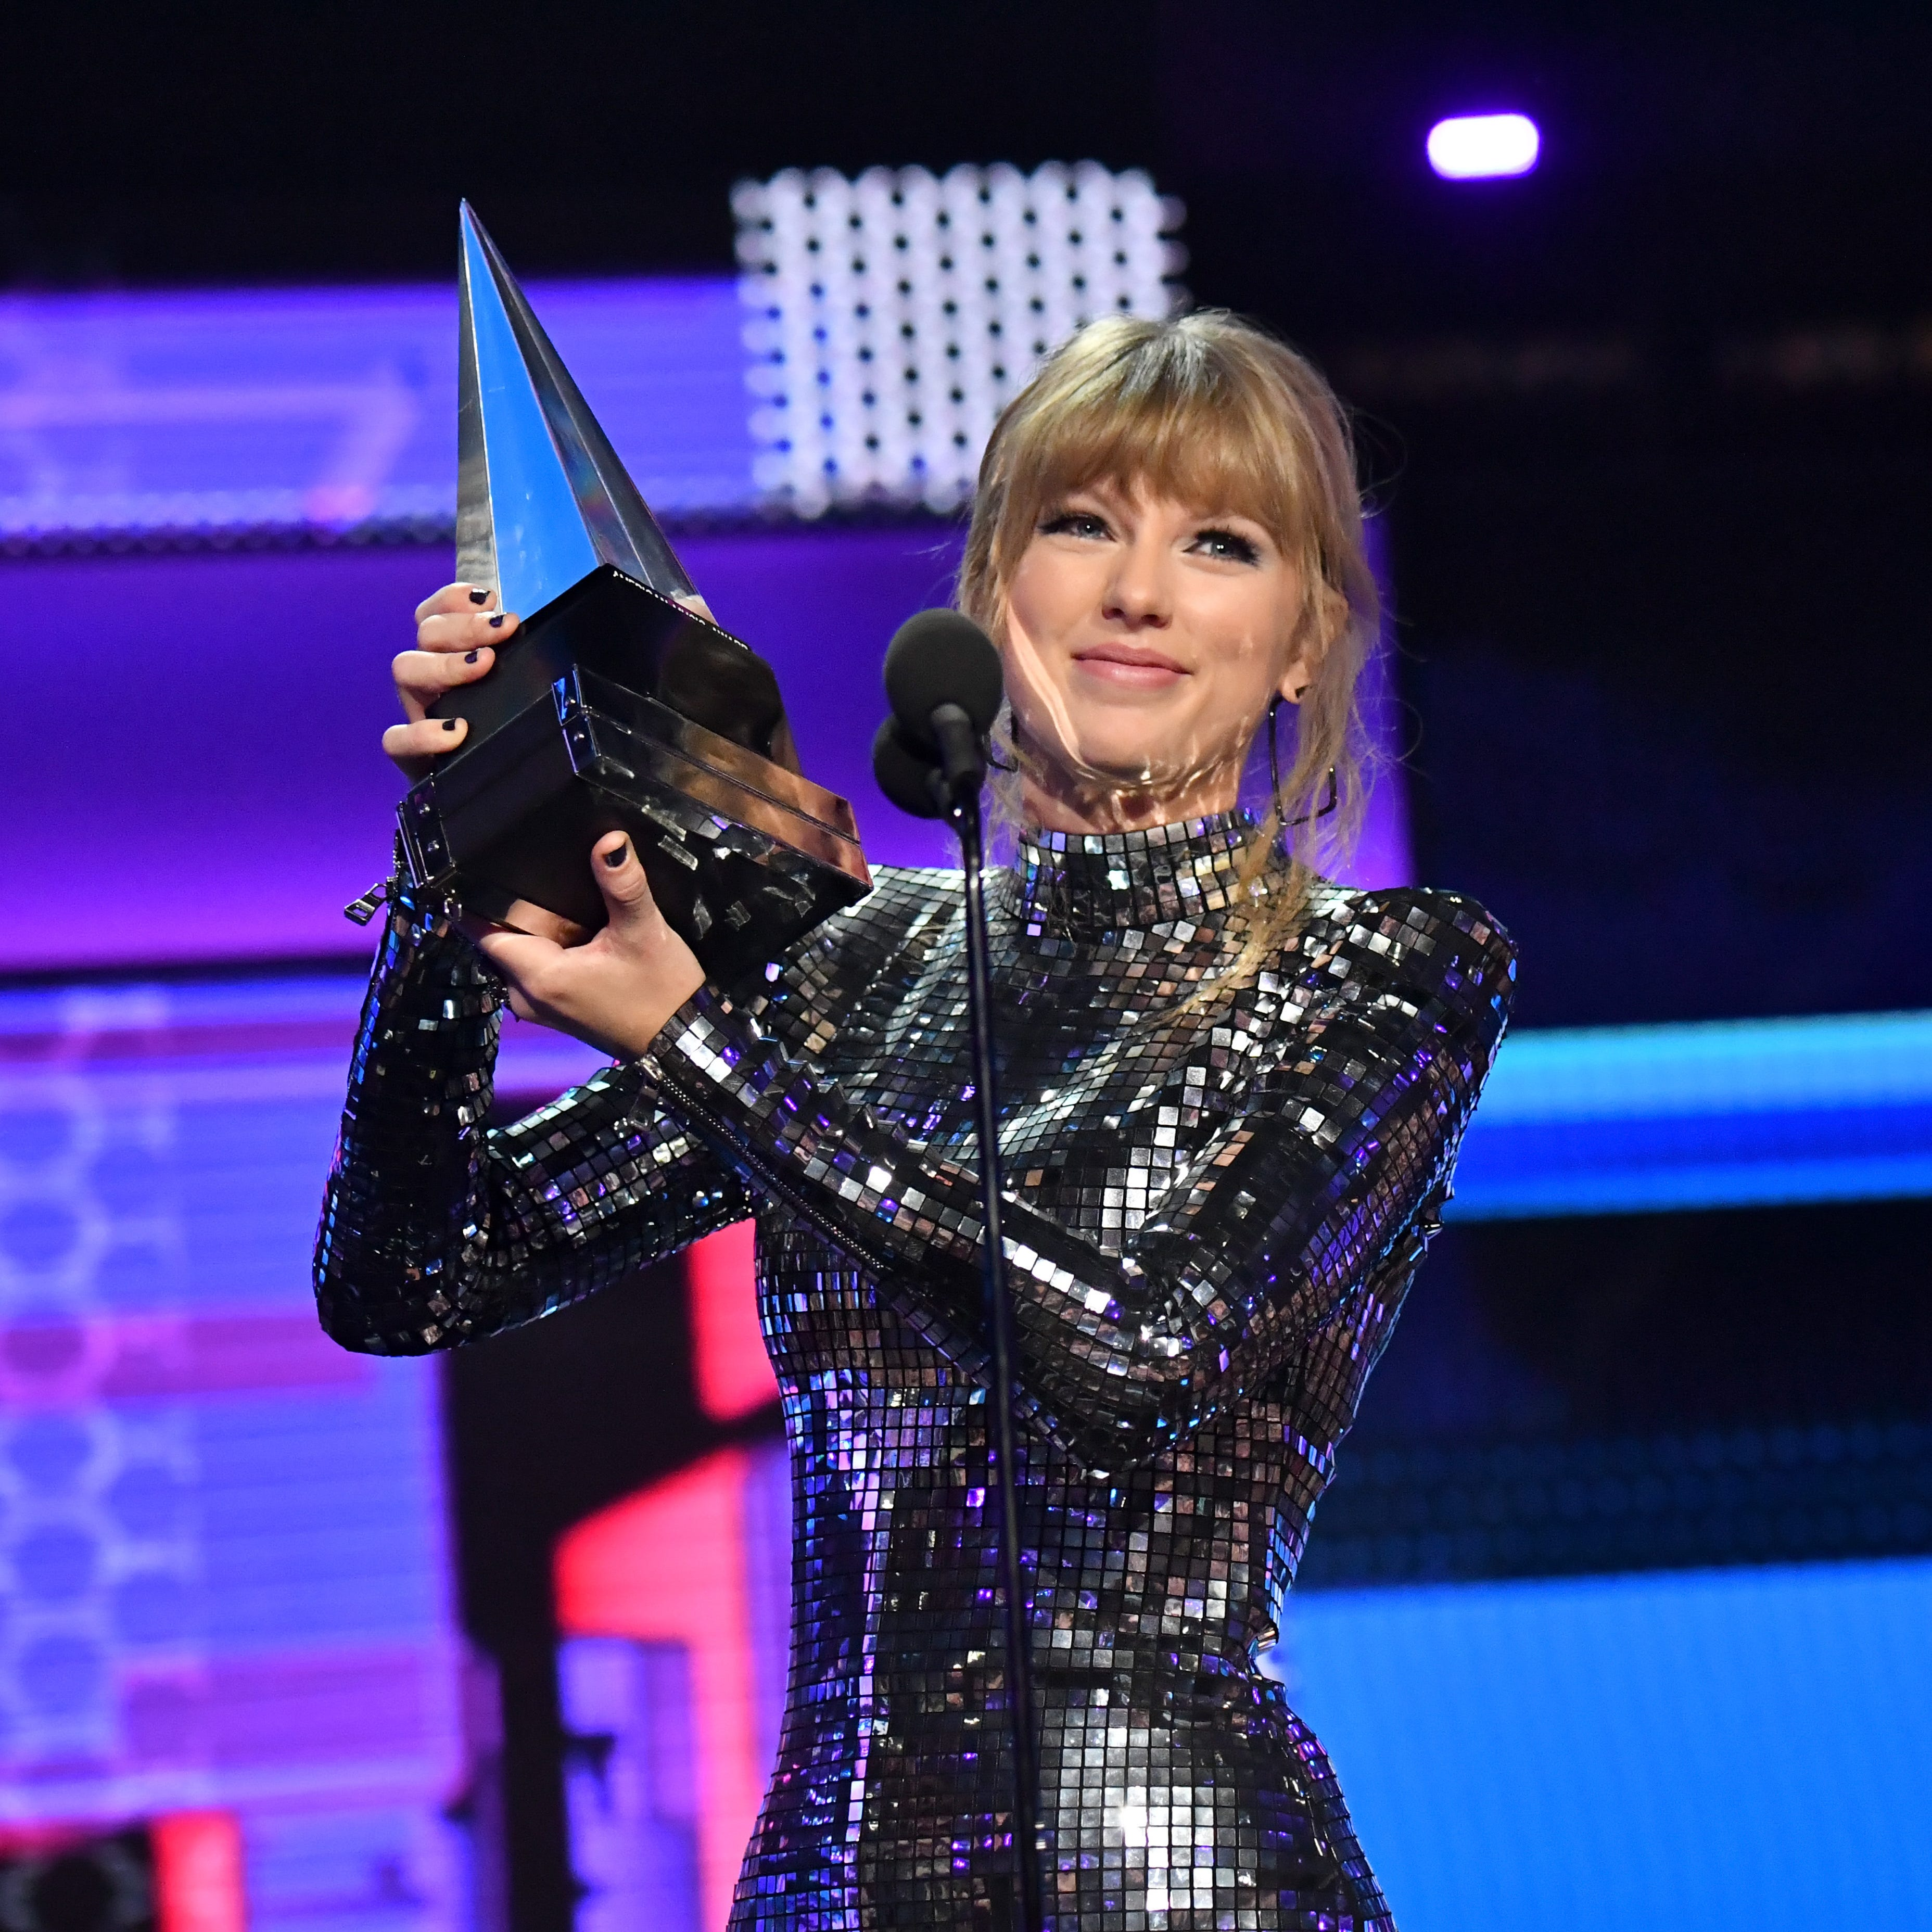 Did Taylor Swift do something bad? Her AMA performance speaks volumes